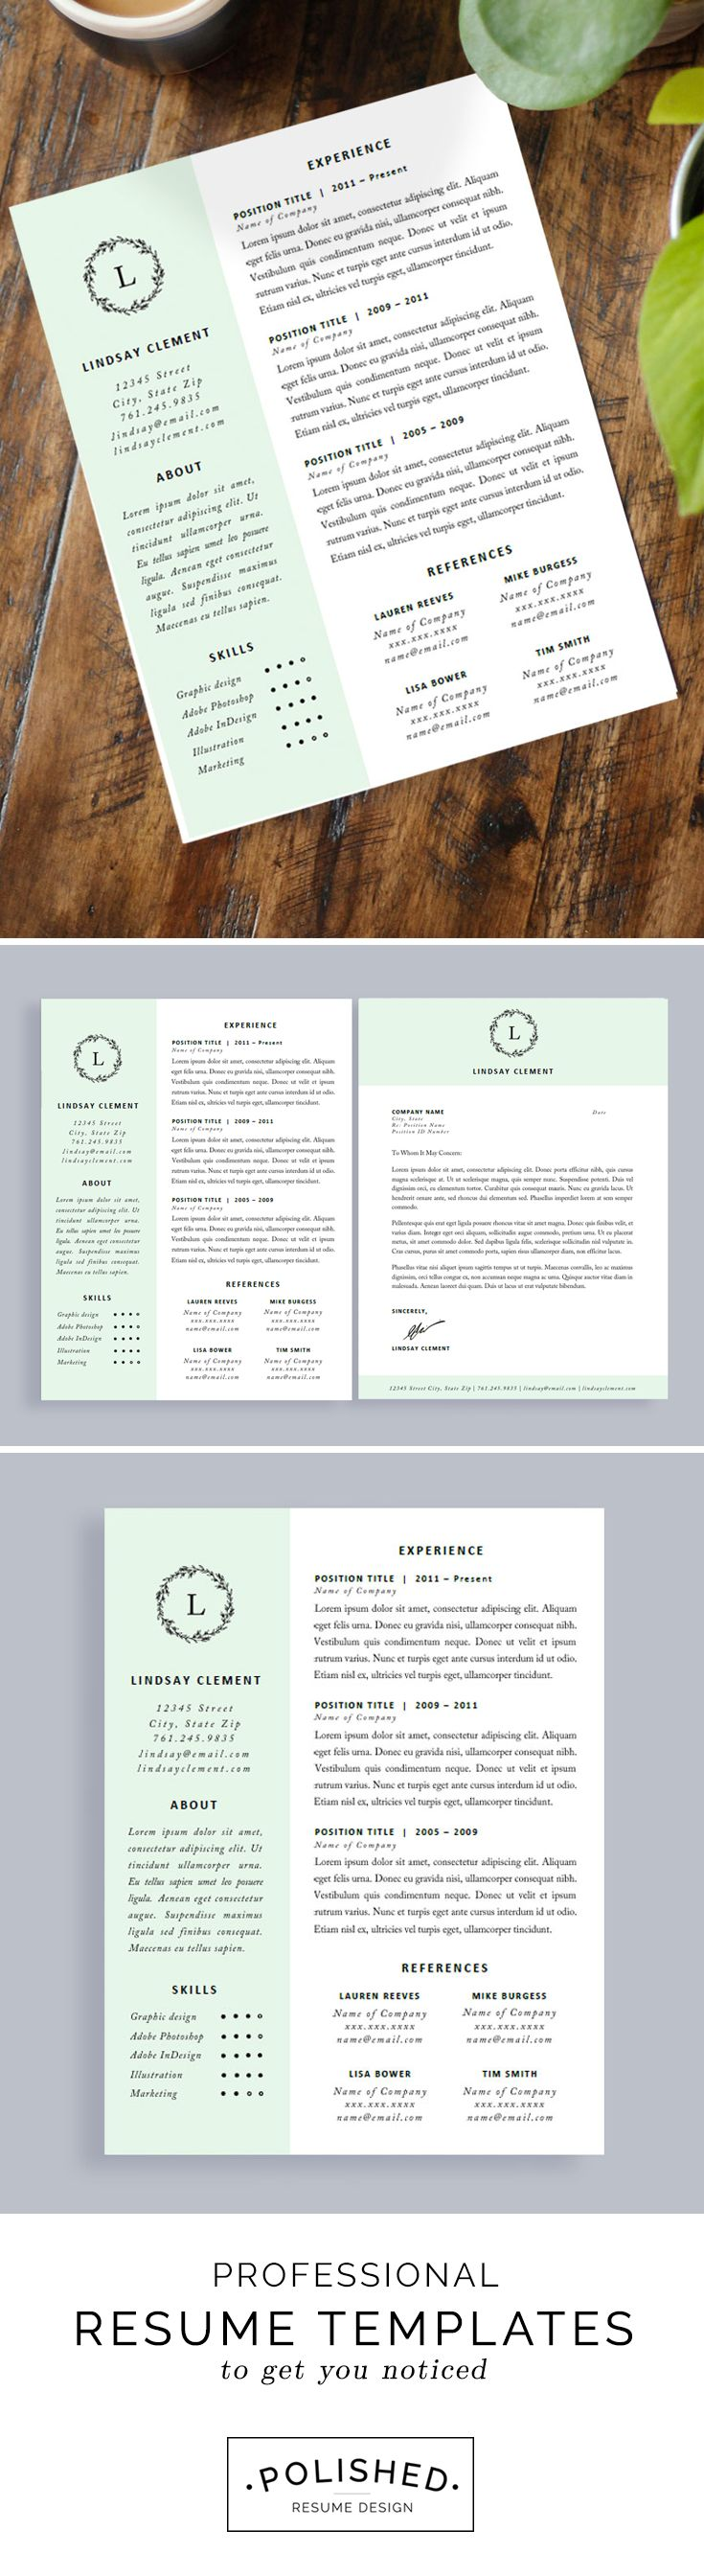 Best Stand Out Resume Templates Images On   Resume